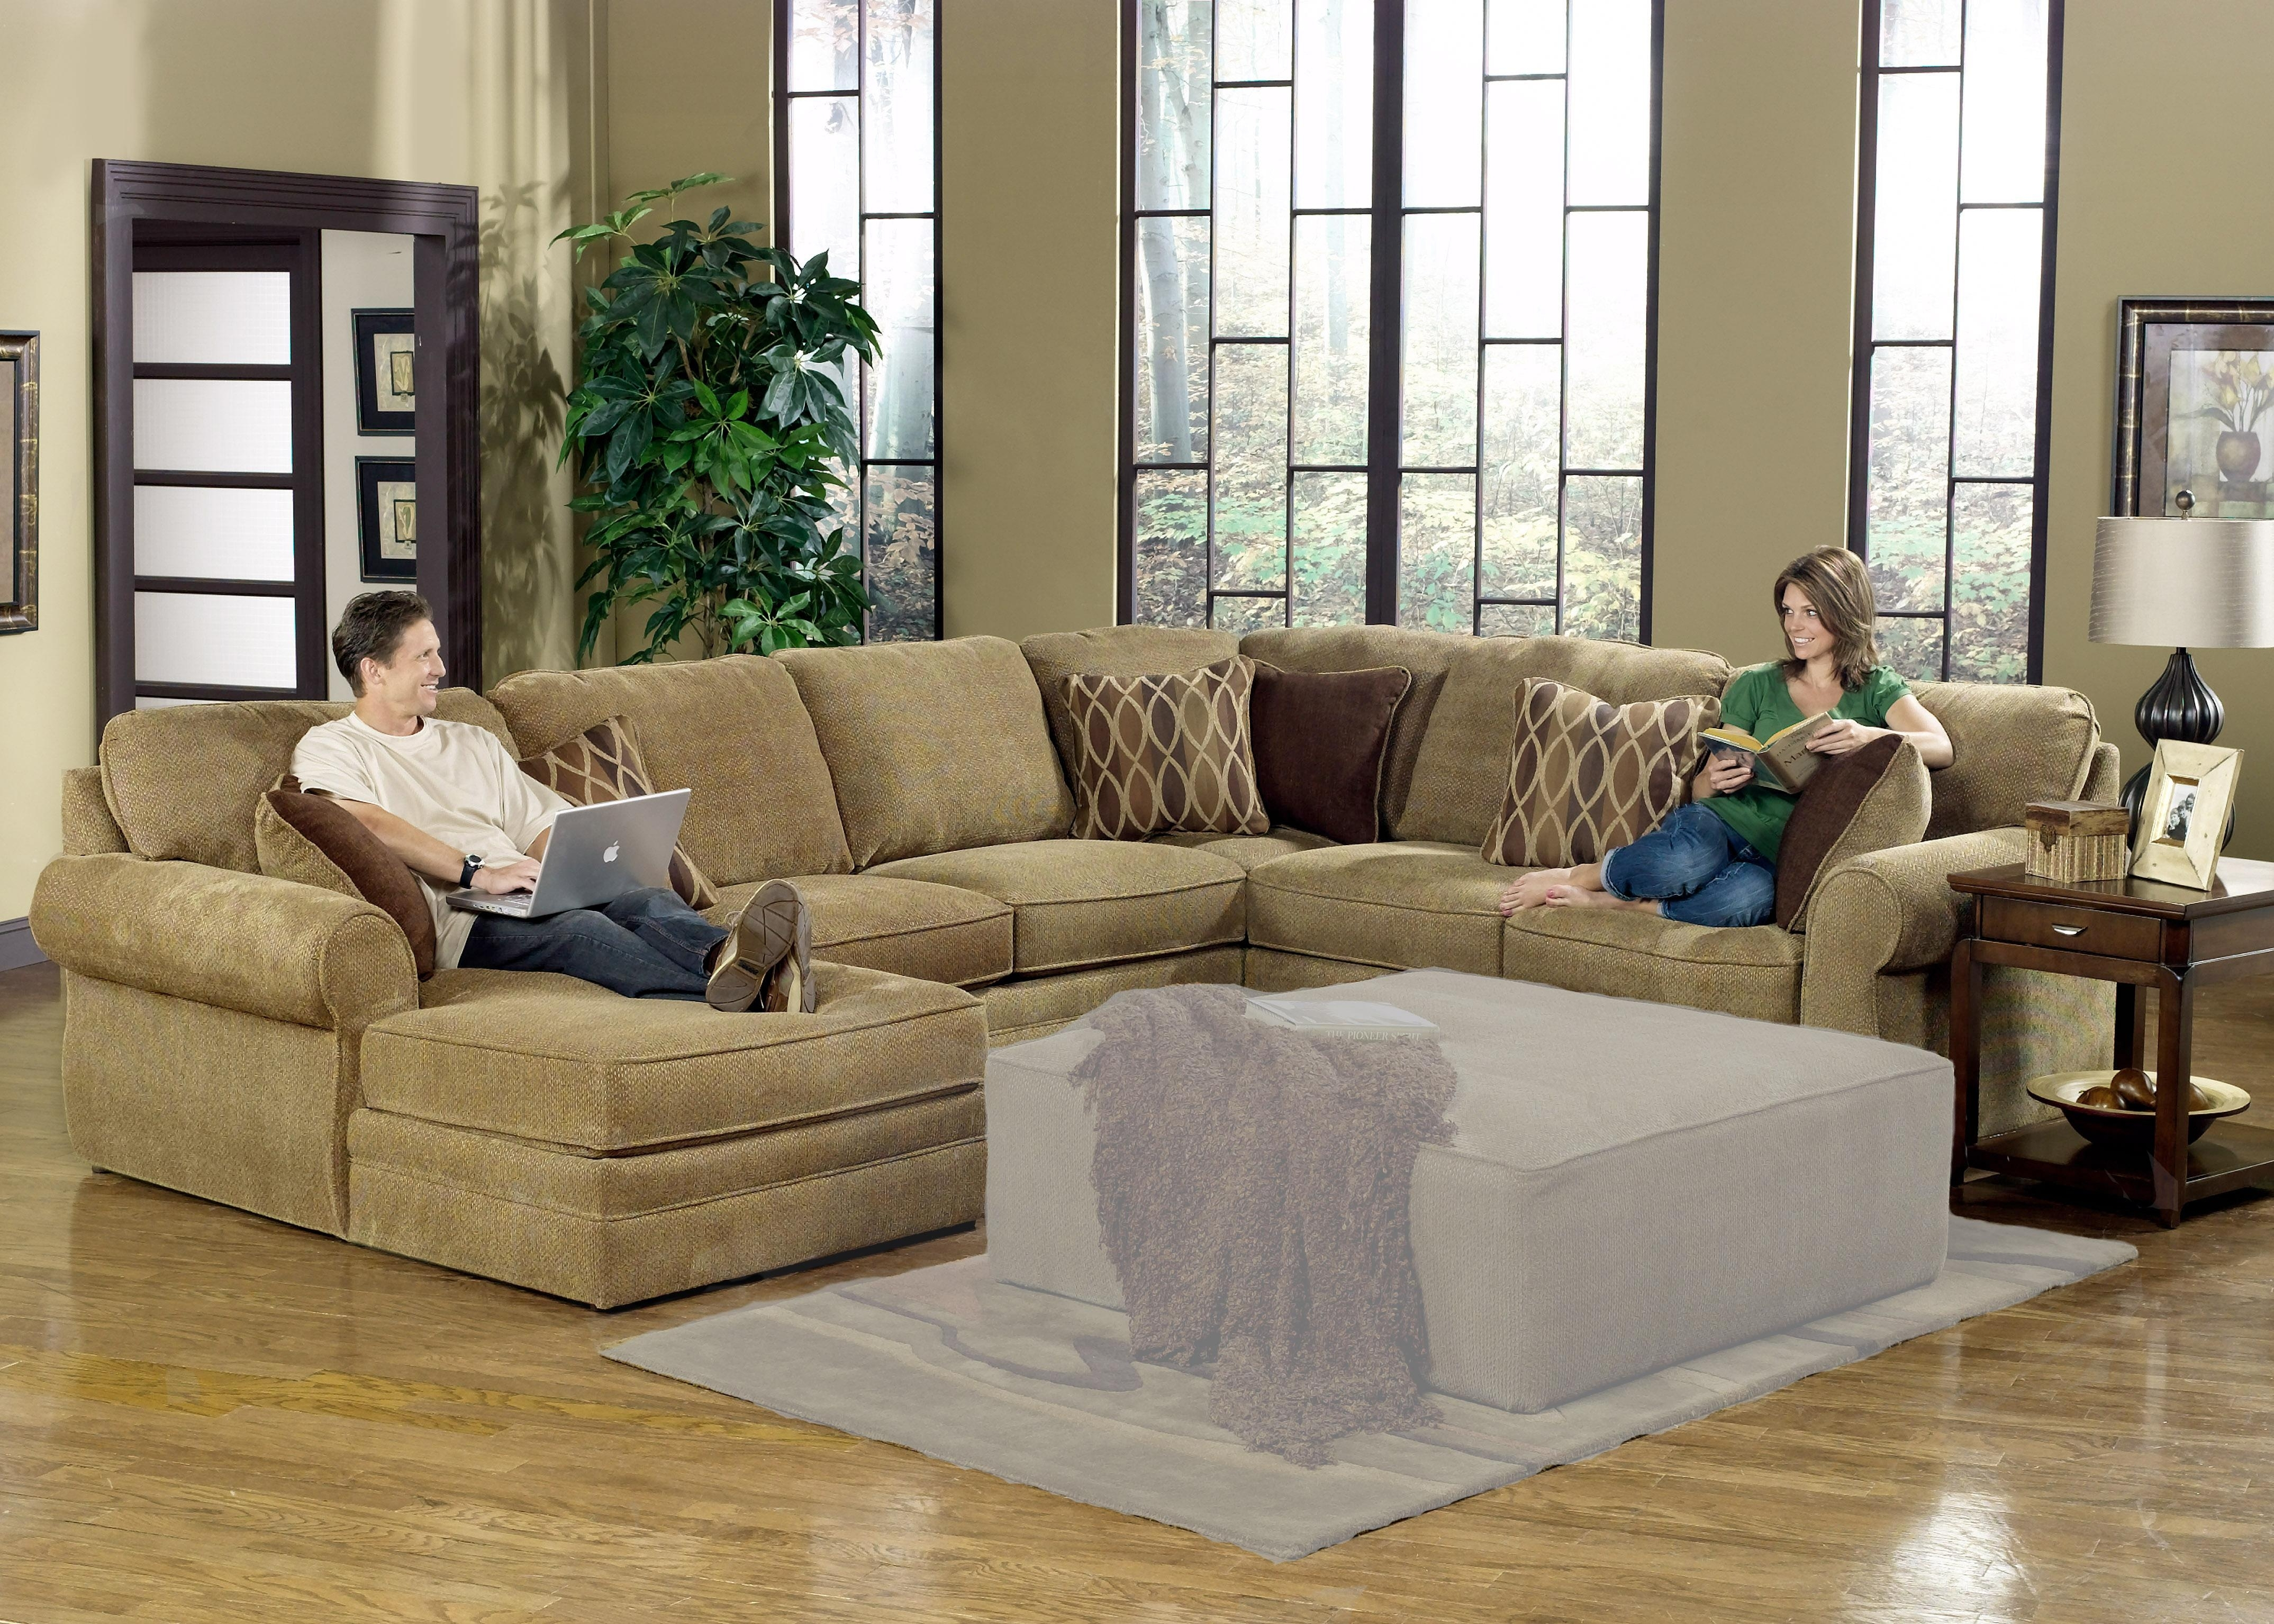 Modern Style U Shaped Sectional Sofa With Home Living Room Sofas And For Modern U Shaped Sectional Sofas (View 3 of 15)